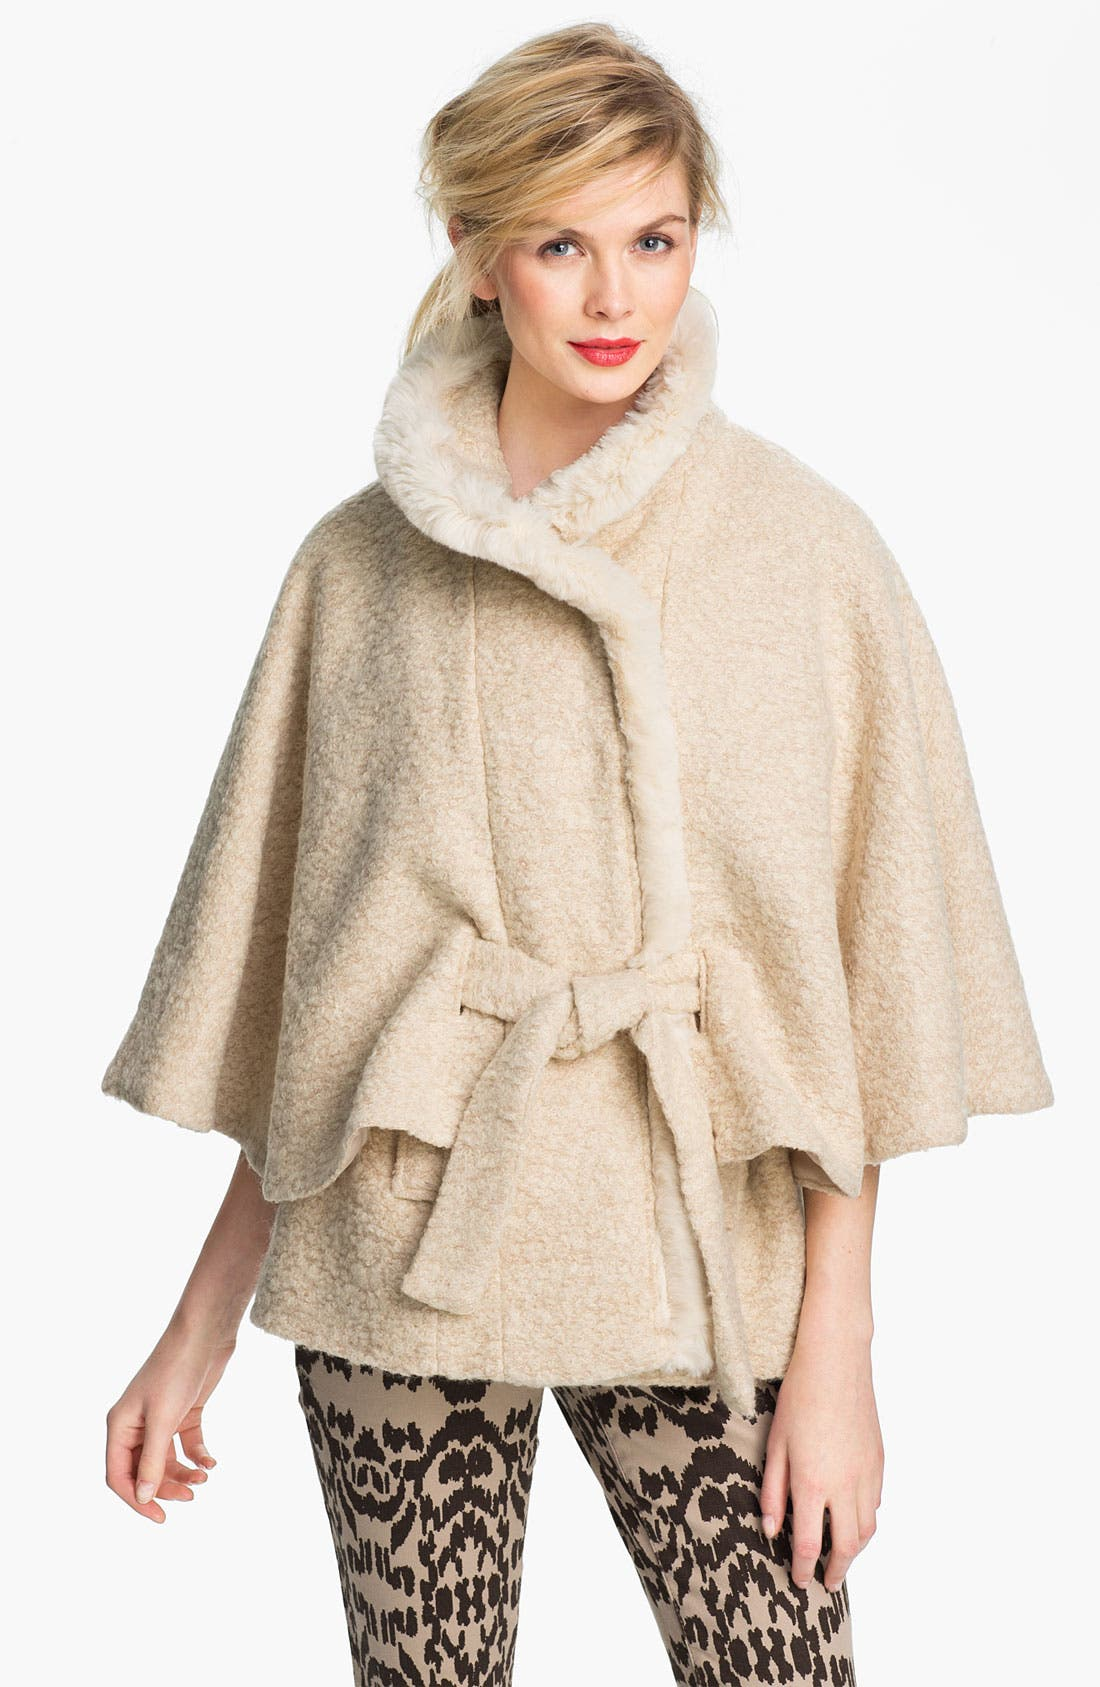 Alternate Image 1 Selected - Via Spiga Faux Fur Belted Cape (Online Exclusive)